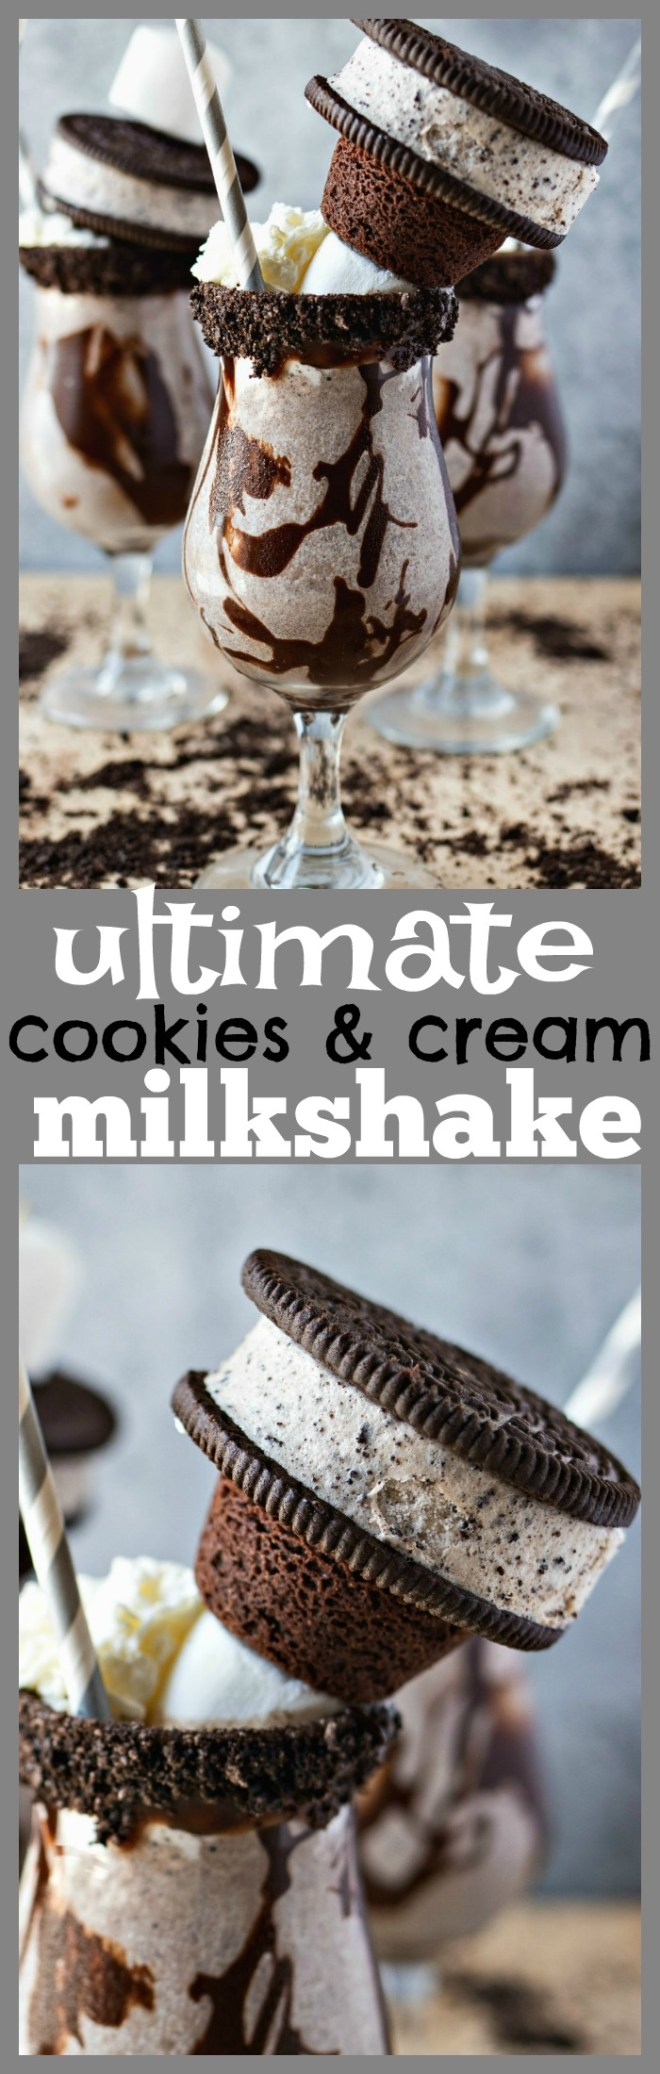 The Ultimate Cookies & Cream Milkshake - Your classic cookies & cream milkshake is taken up a notch with the addition of decadent garnishes like marshmallows, brownies, and ice cream sandwiches! You're never gonna wanna go back to the boring regular shake again!